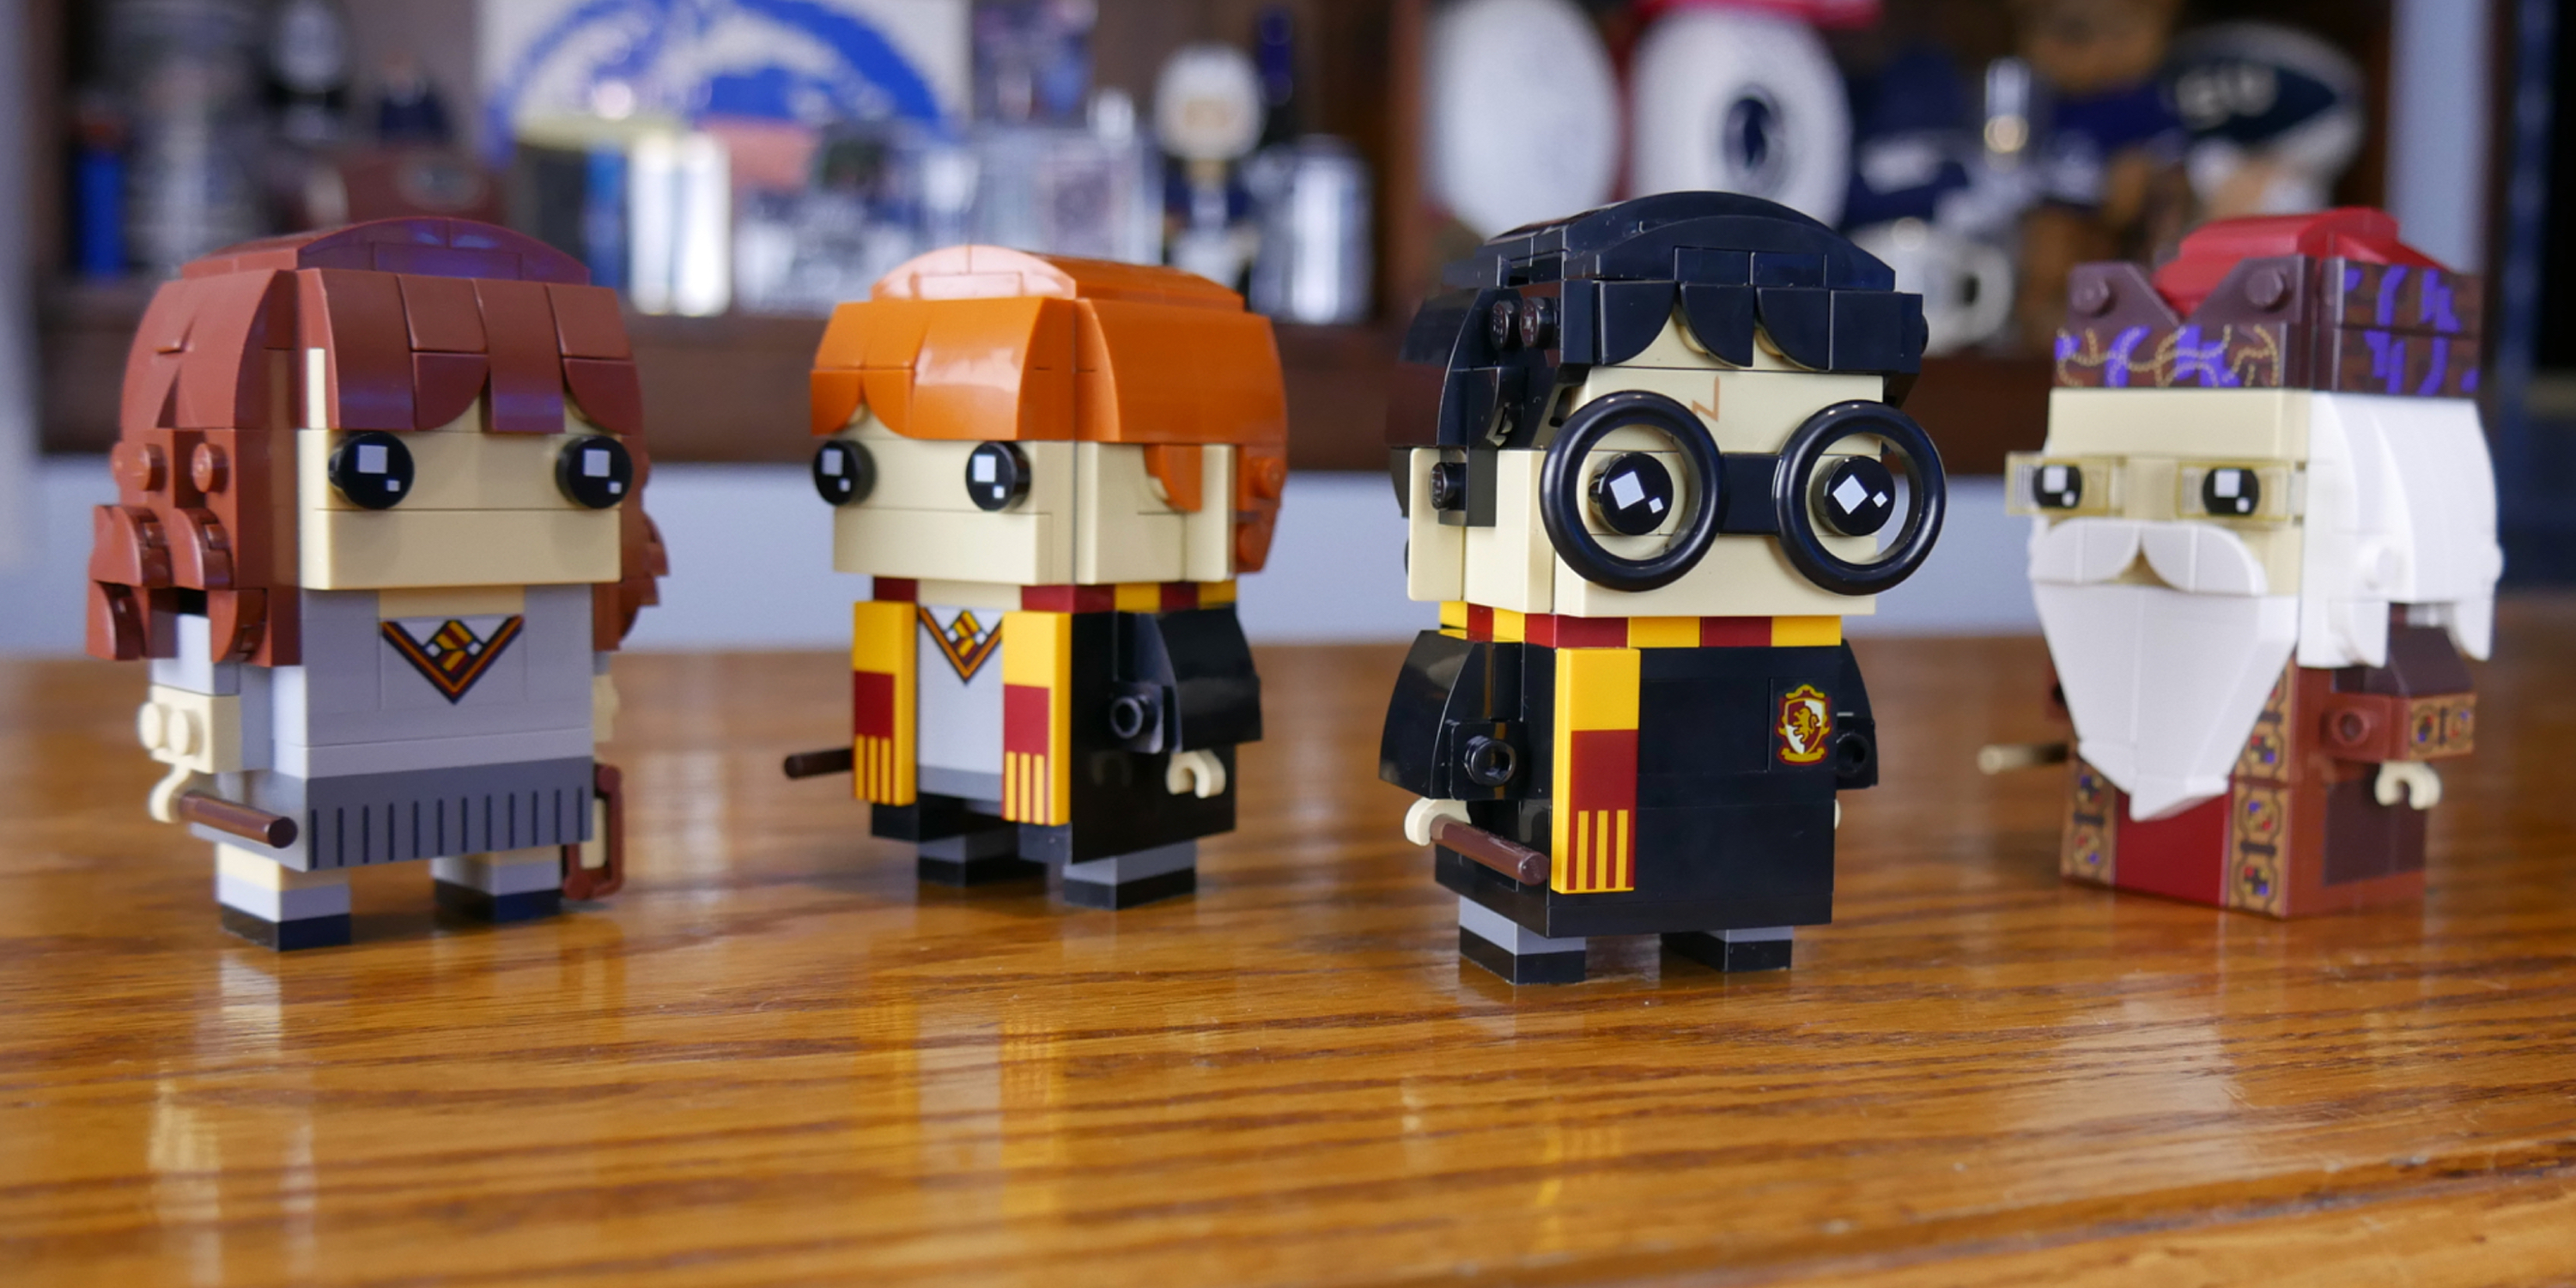 Hands-on: LEGO's new Harry Potter BrickHeadz are the most magical brick-built figures yet